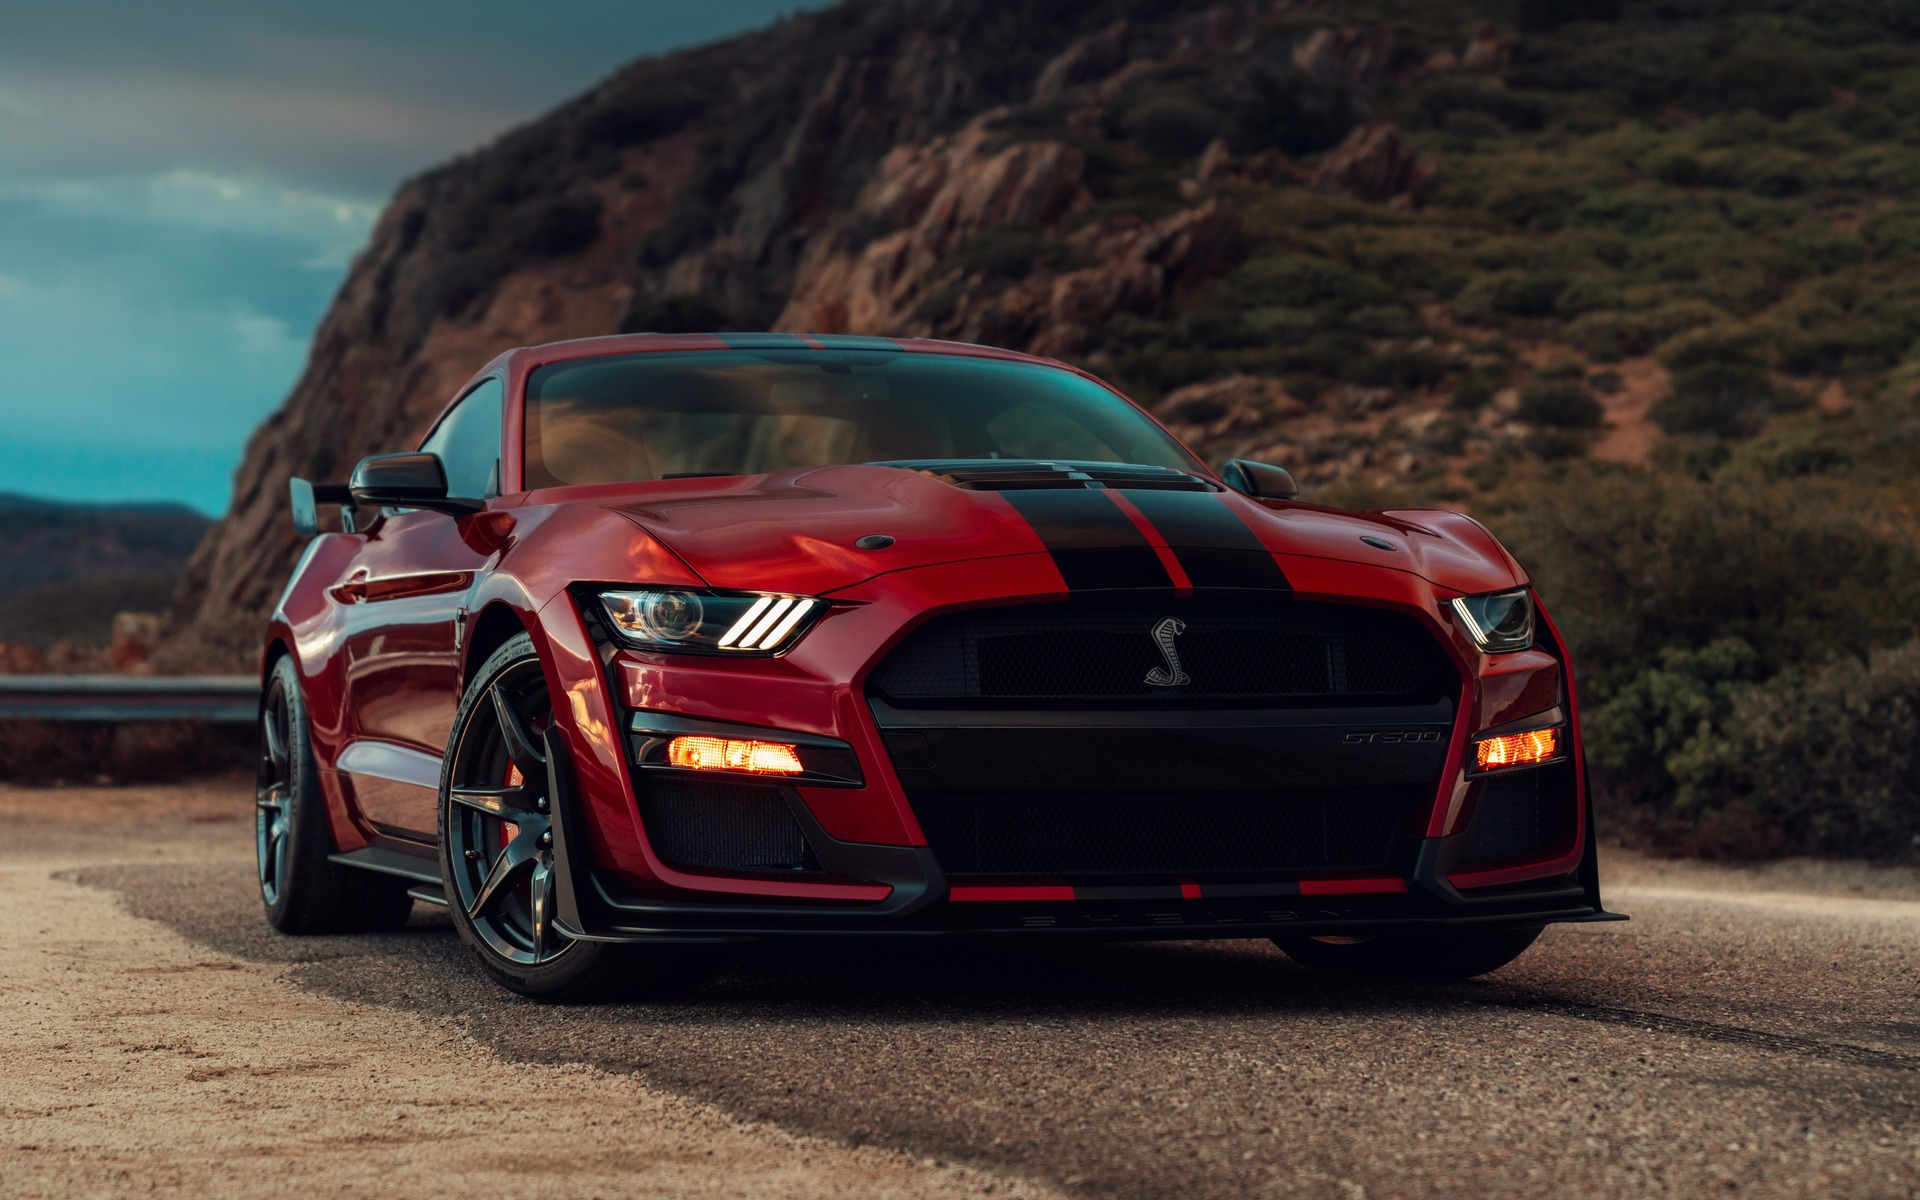 Ford Mustang Shelby GT5002020